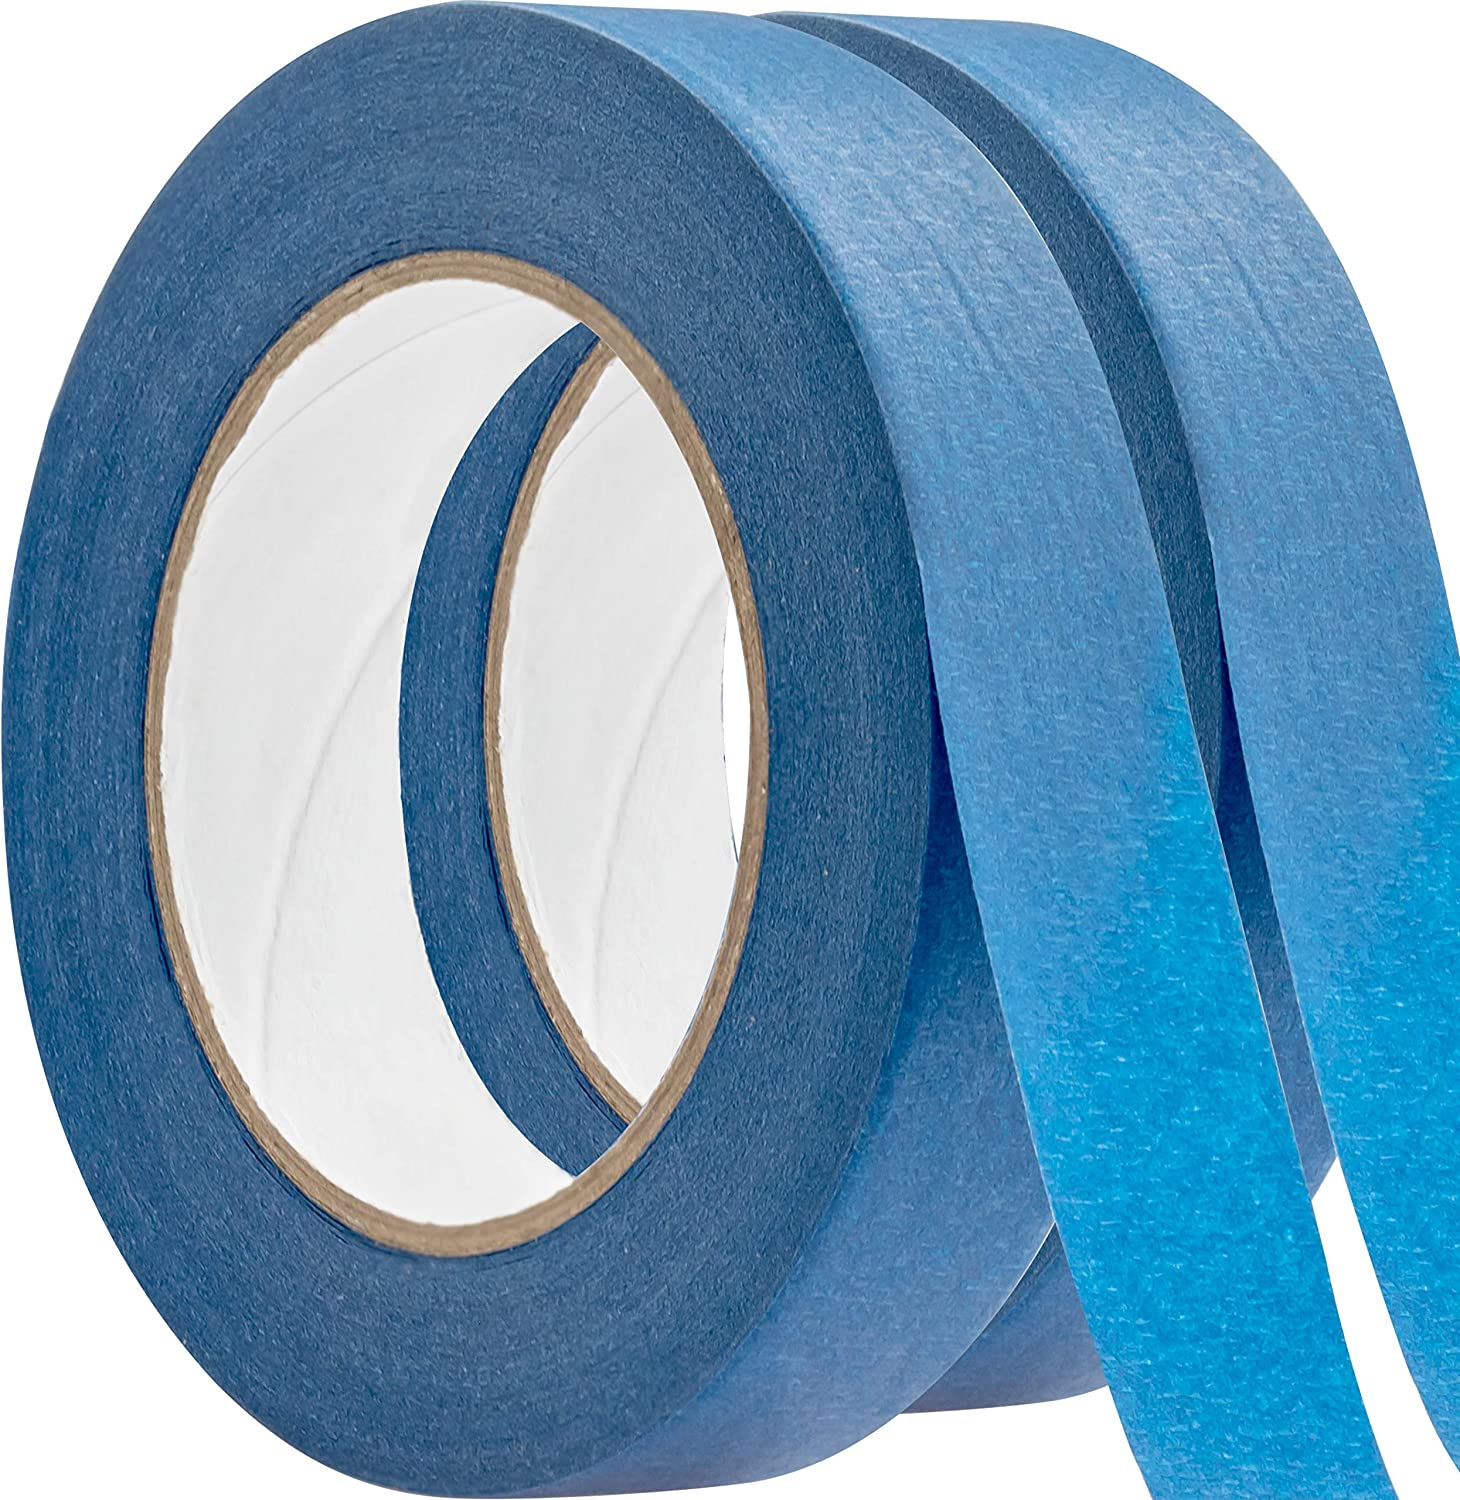 No-Residue 1 Inch, 60 Yard Blue Painters Tape 2 Pk. Easy-Tear, Pro-Grade Removable Masking Tape Great for Home, Office or Commercial Contractor. Clean, Drip-Free Painting with Wide Crepe Paper Rolls